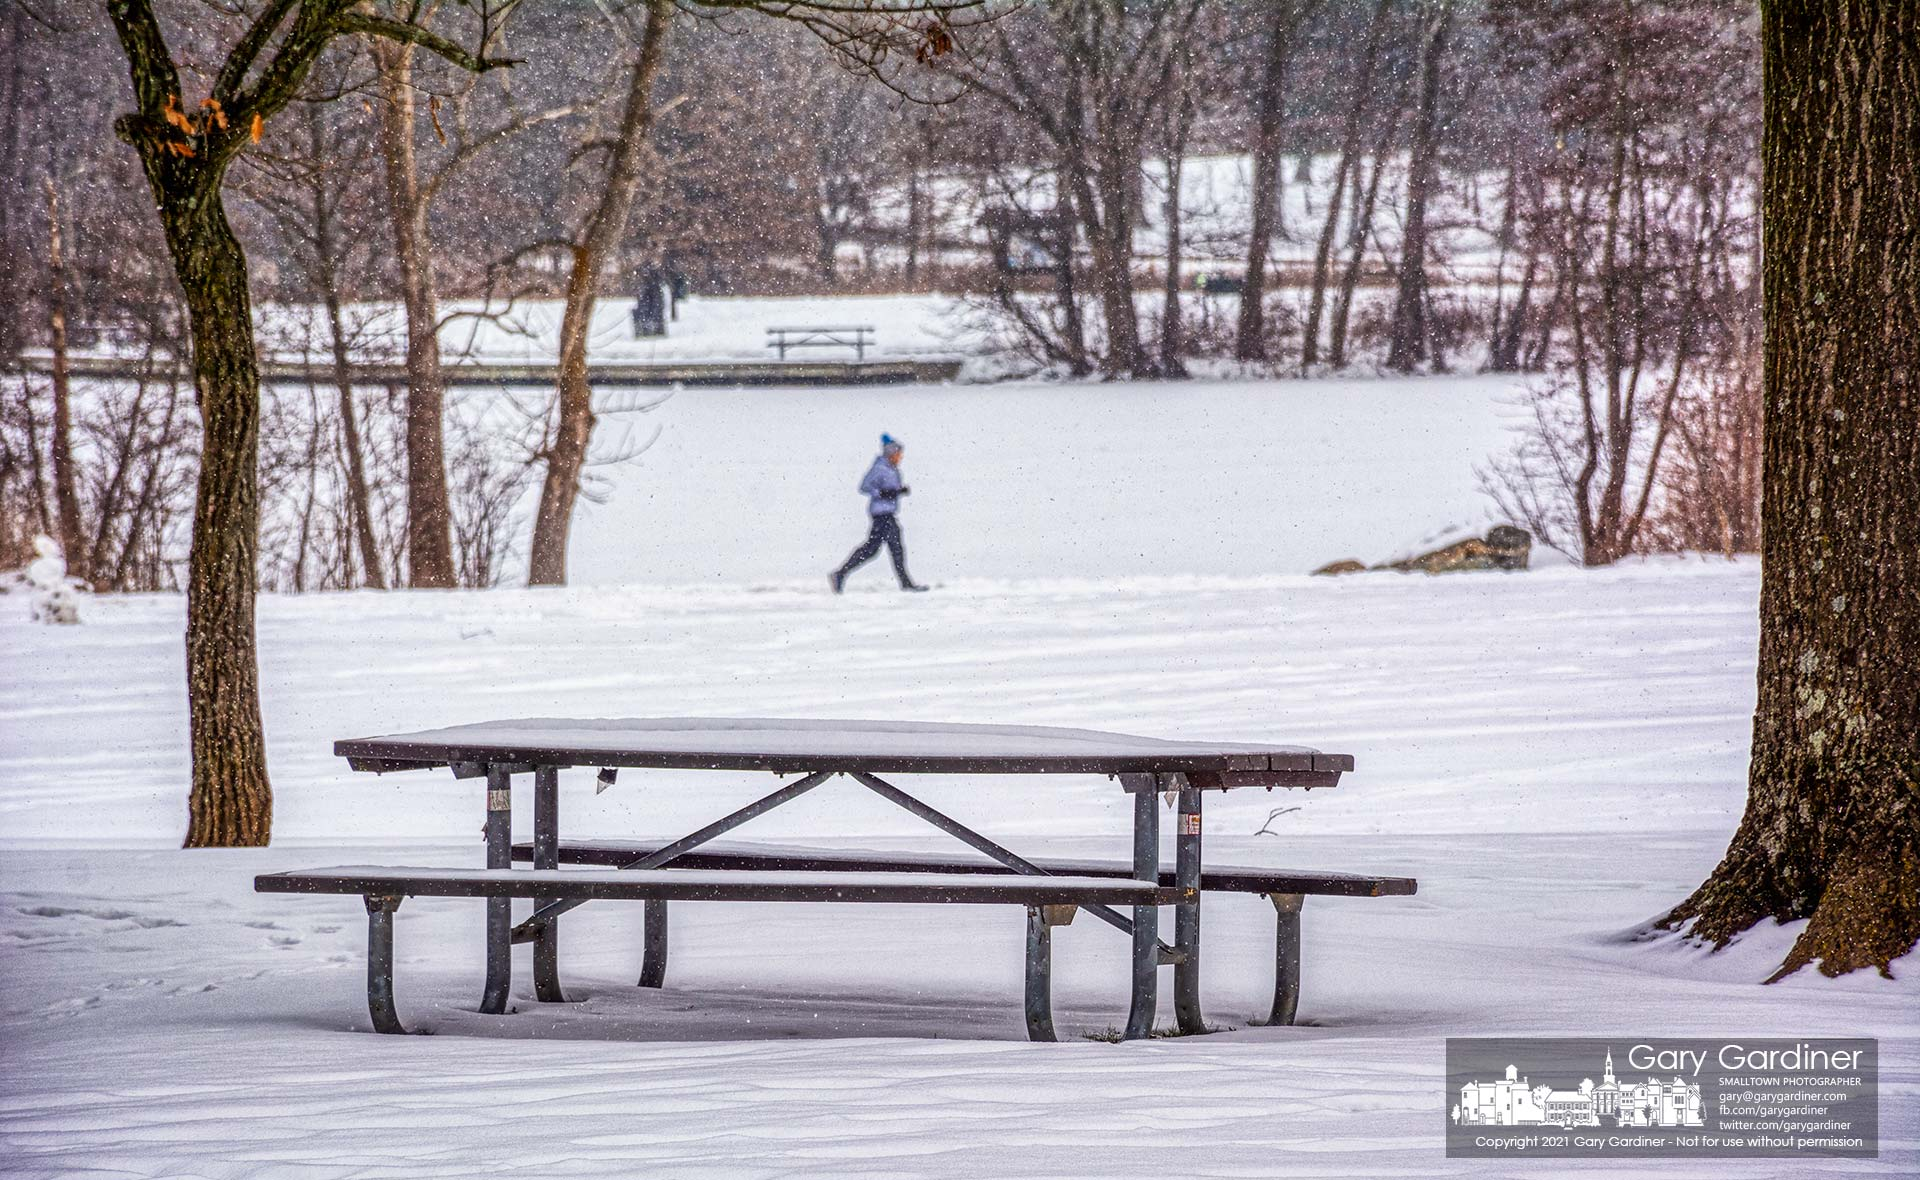 A runner travels along the trail past Schrock Lake at Sharon Woods Metro Park where the picnic tables wear a covering of snow as more is forecast for the week making picnics nearly impossible. My Final Photo for Feb. 13, 2021.